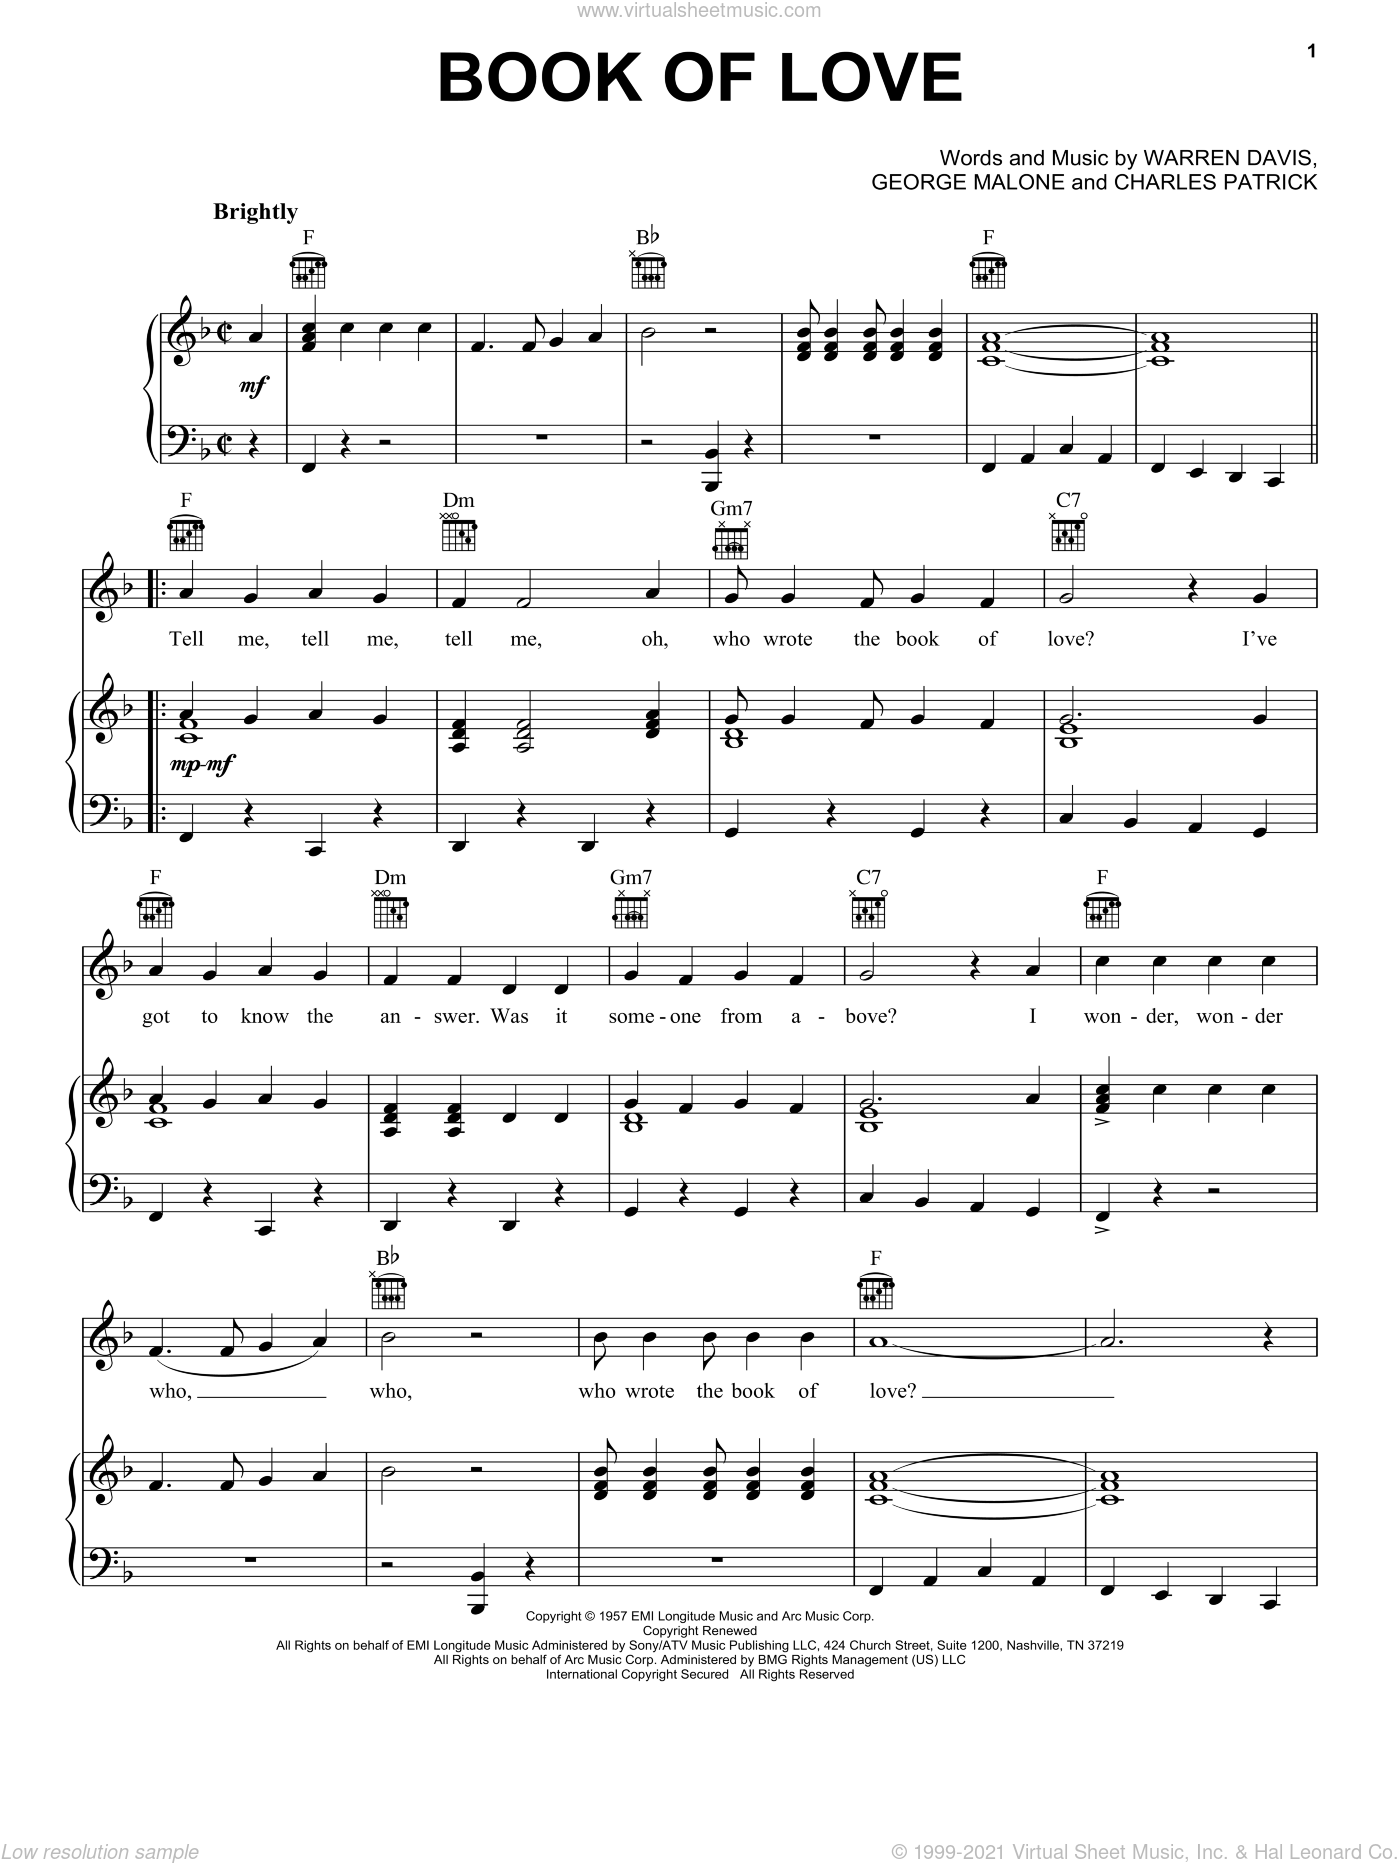 Book Of Love sheet music for voice, piano or guitar by Warren Davis